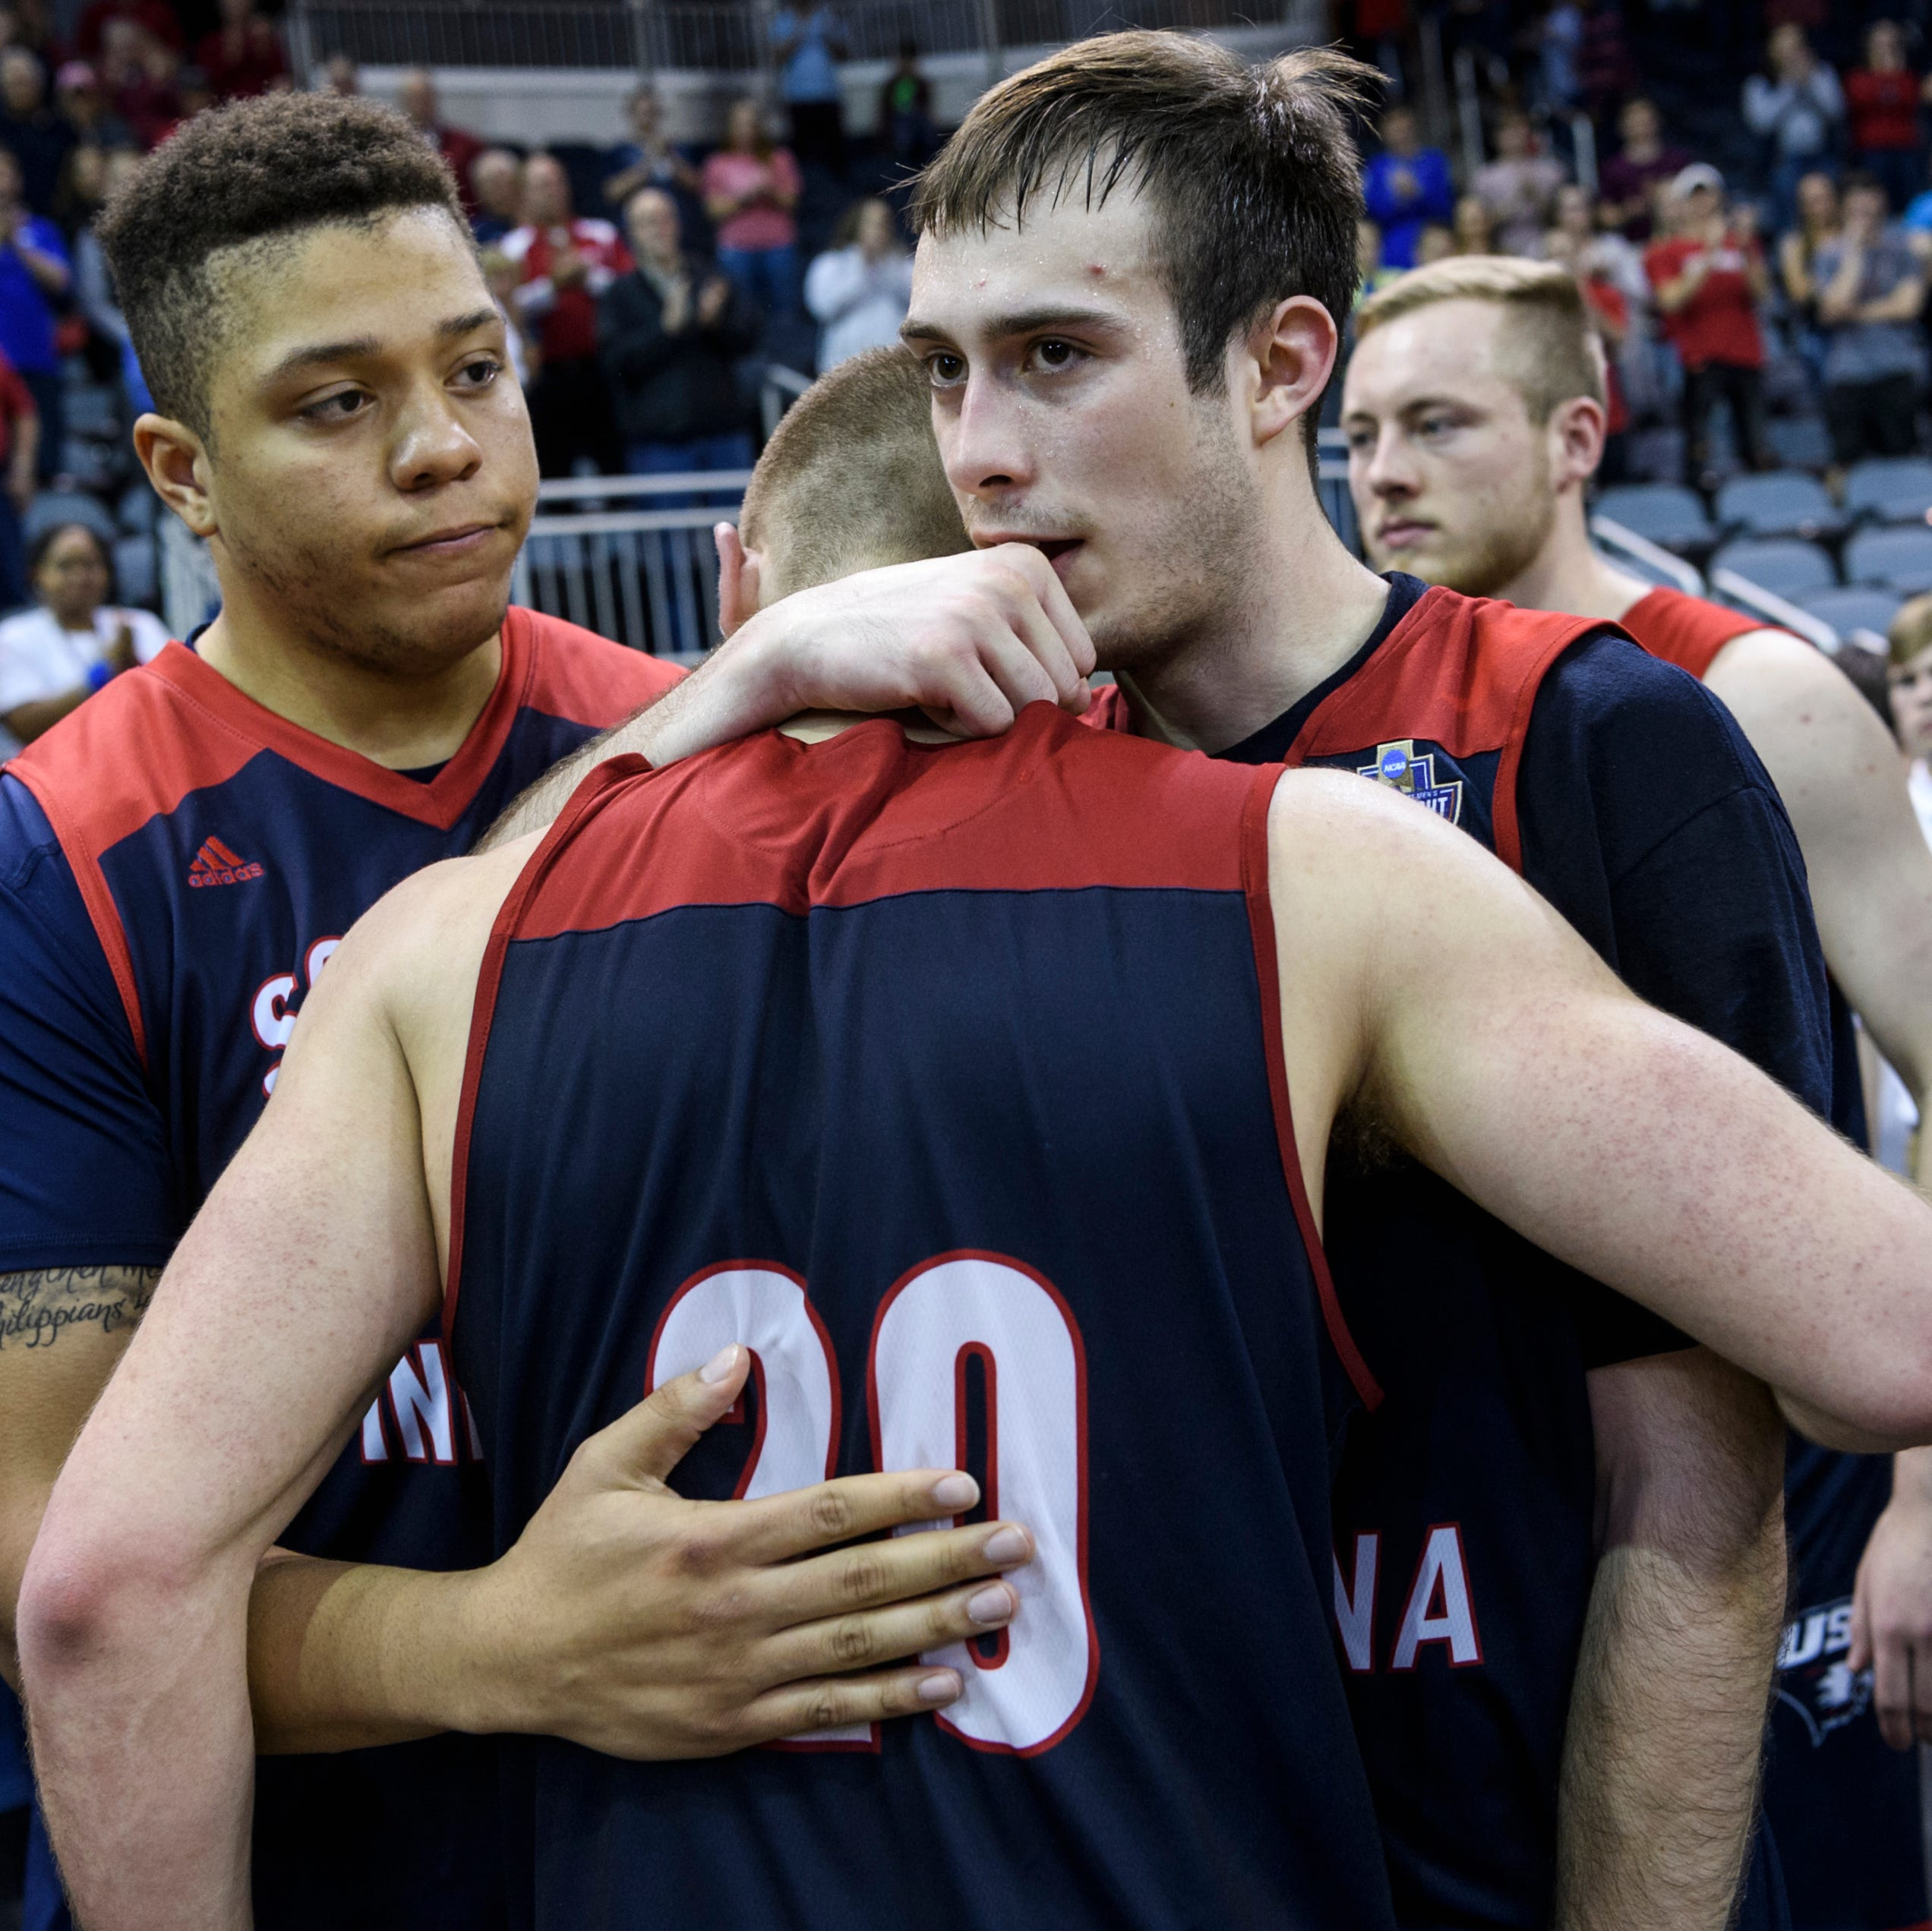 USI basketball loses in Final Four despite Alex Stein breaking career scoring record